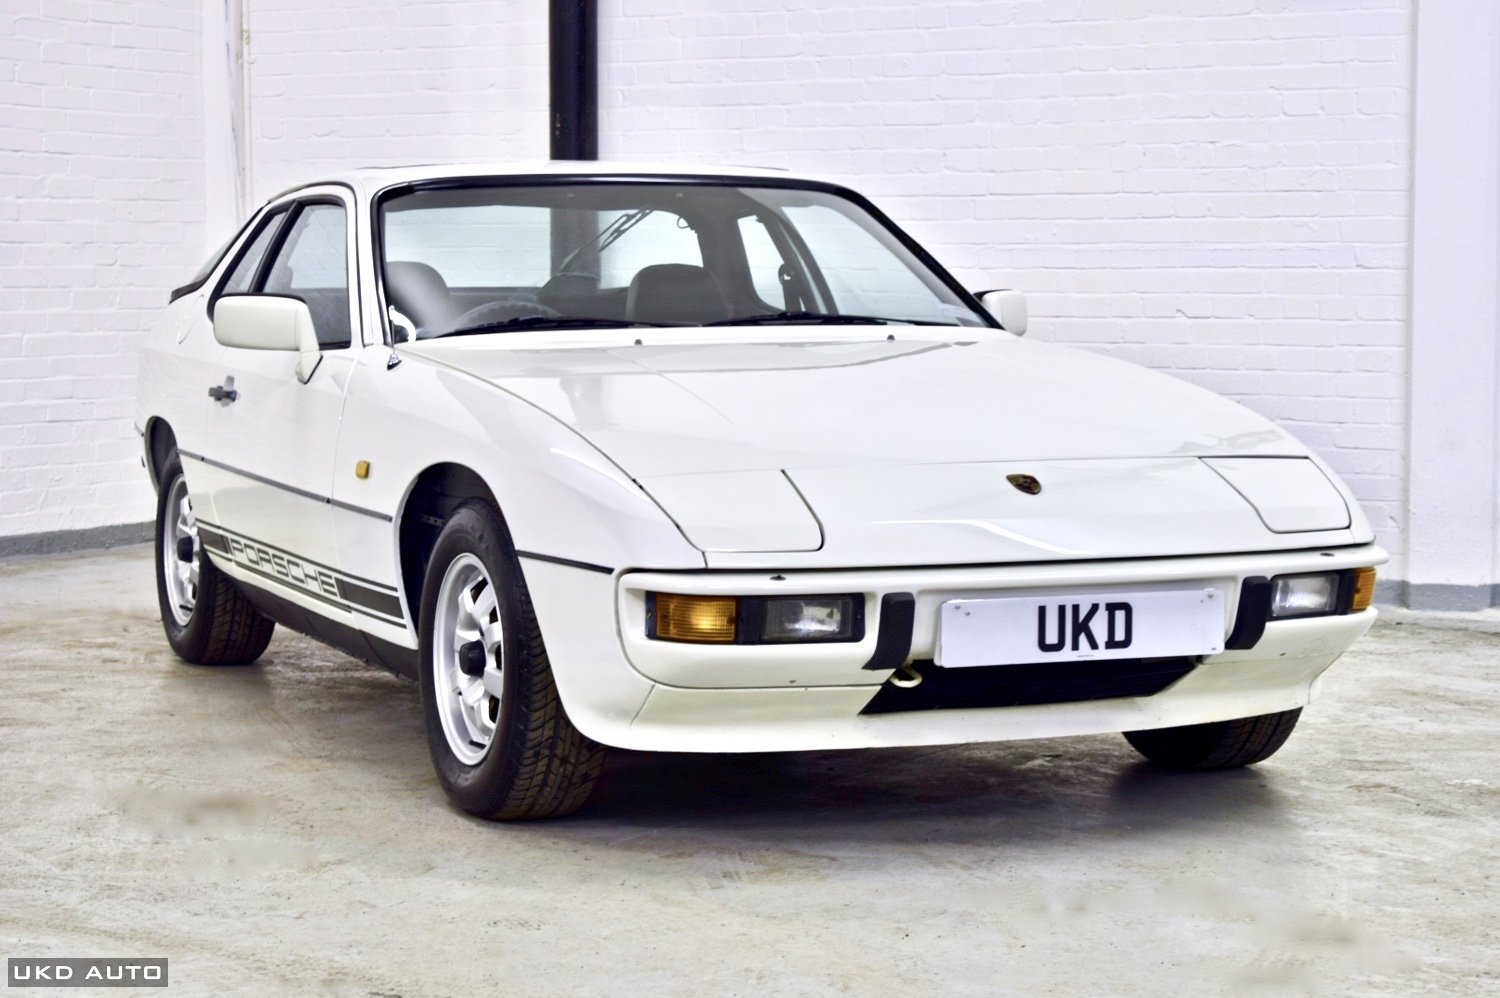 PORSCHE 924 2.0 COUPE WHITE 2DR 1984